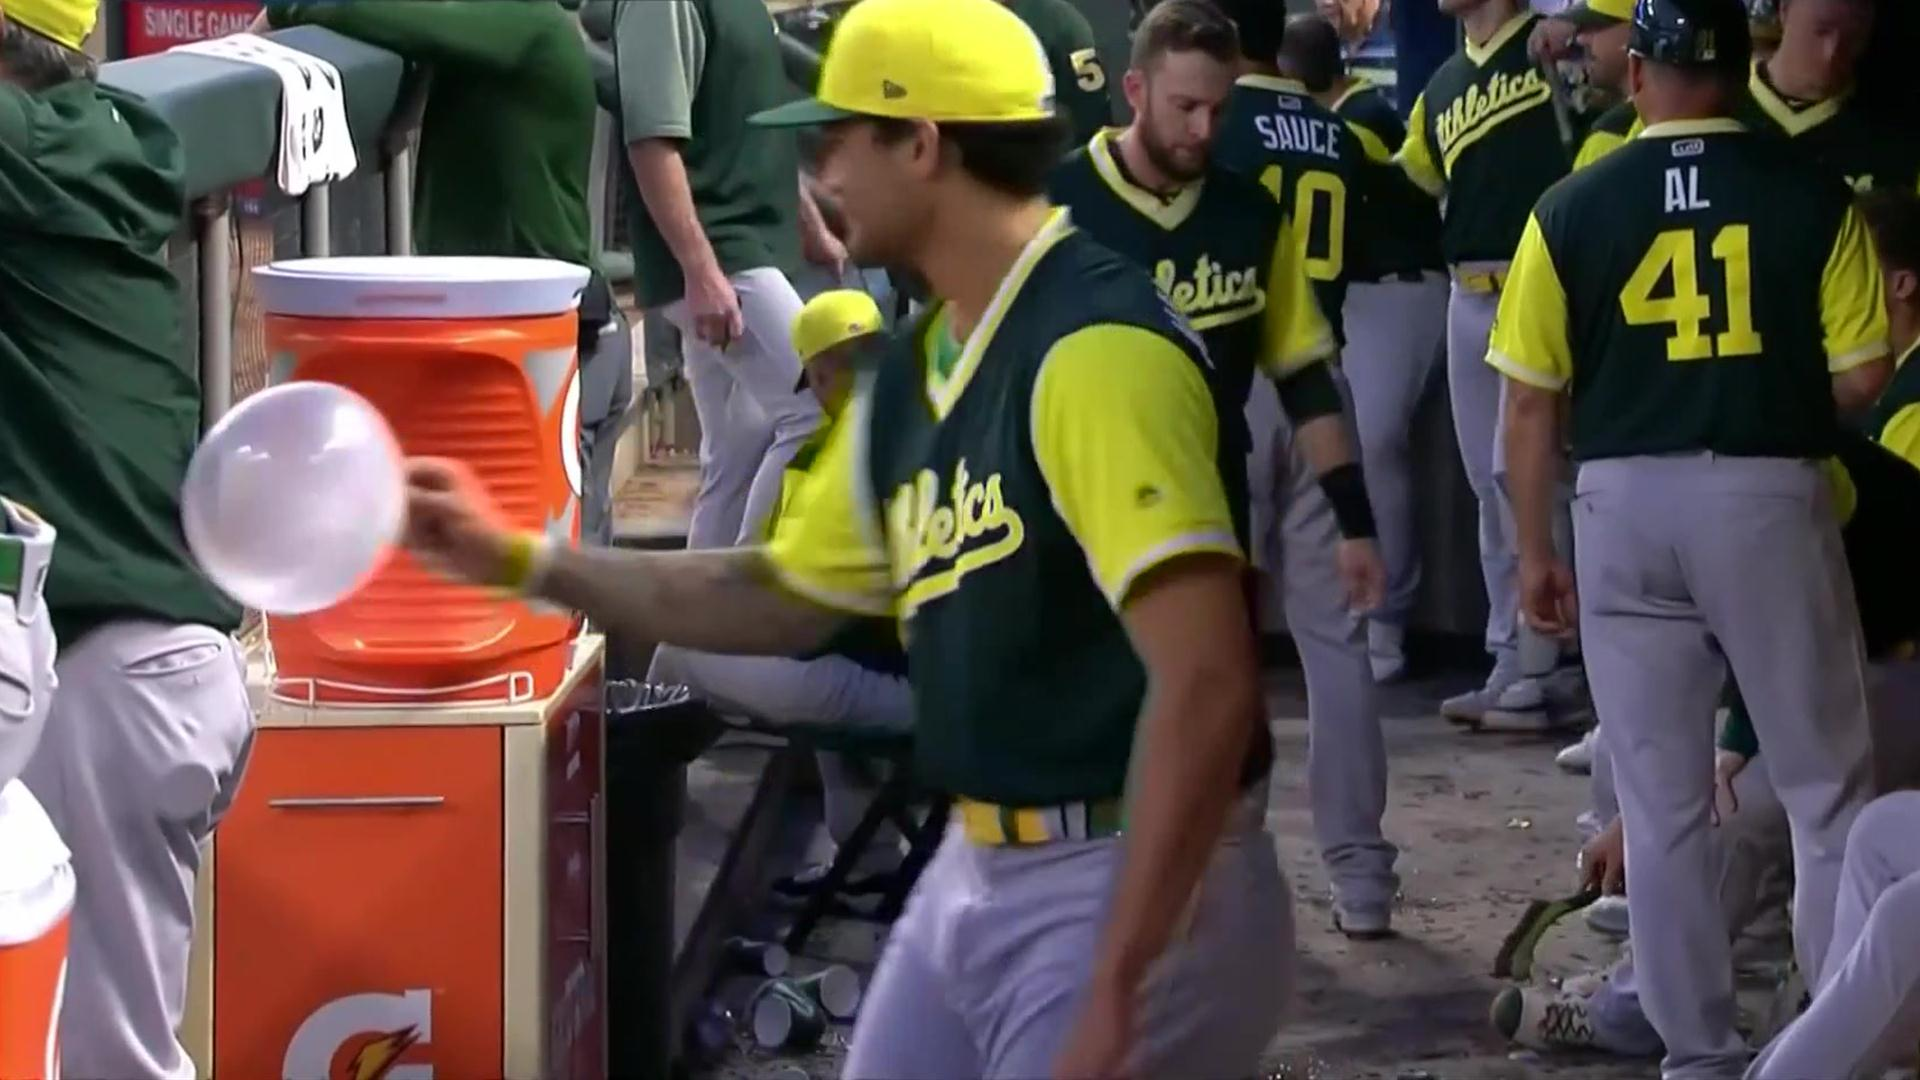 Sean Manaea plays with huge bubble of gum in As dugout NBCS Bay 1920x1080